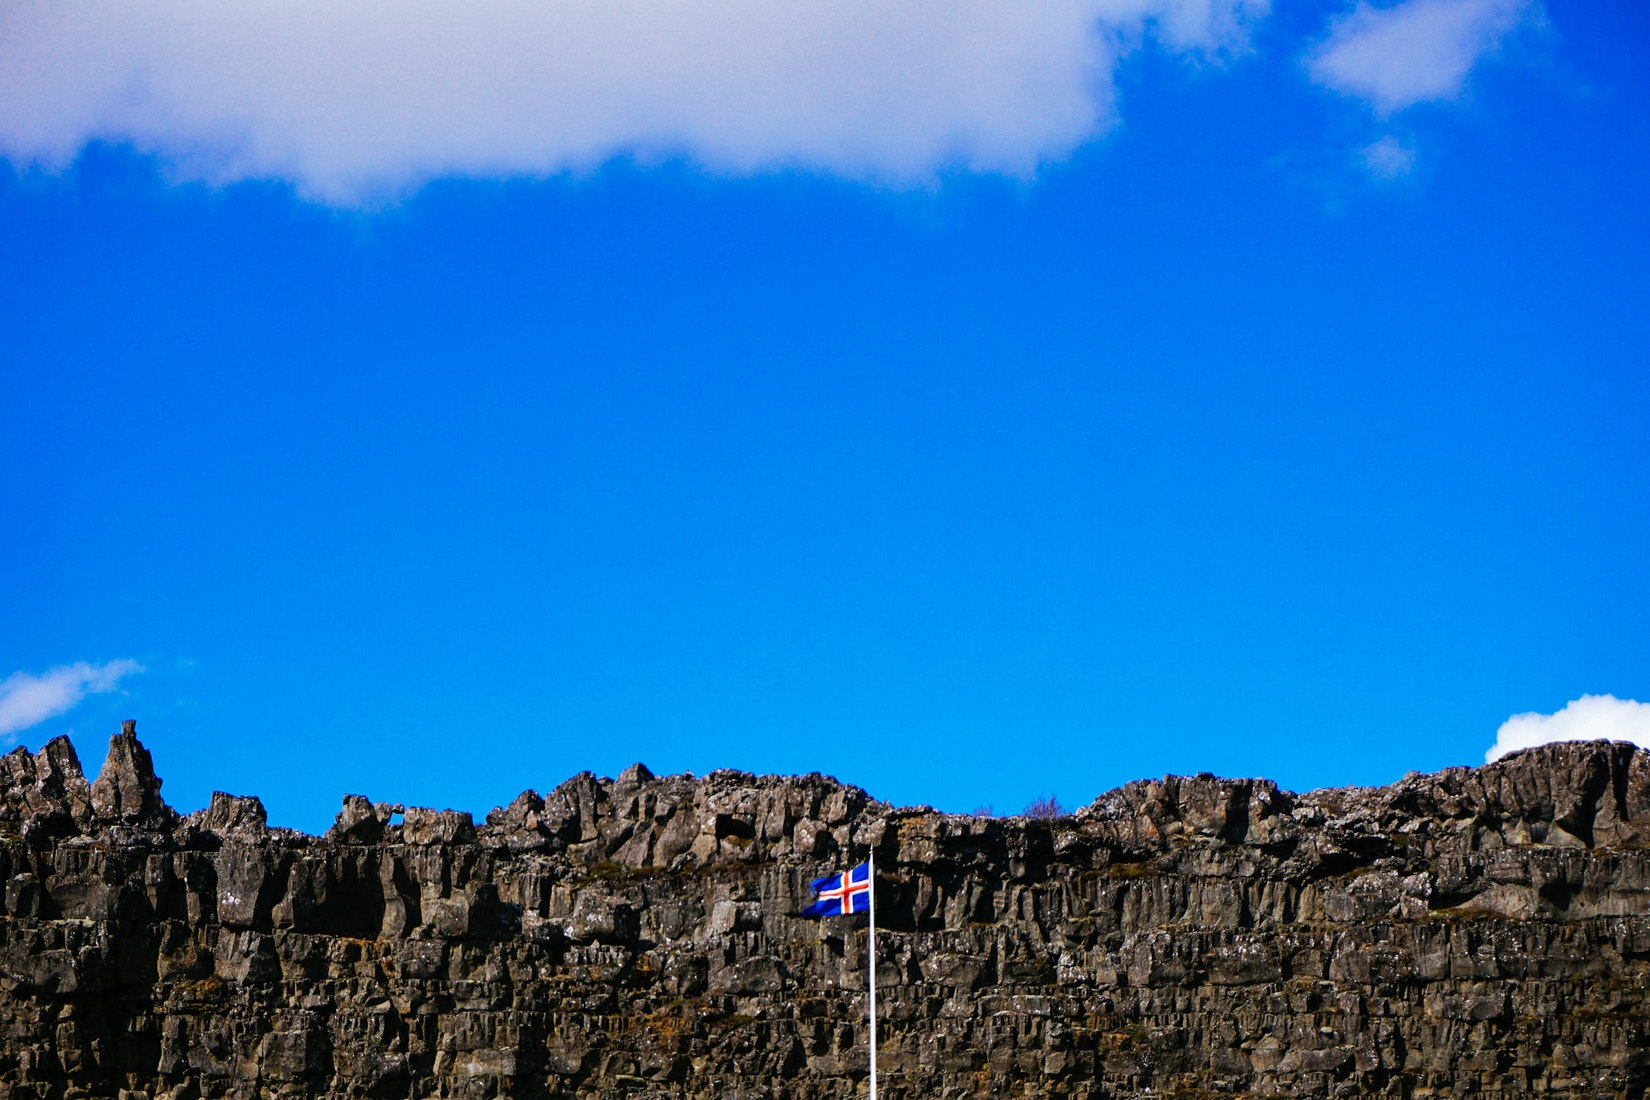 Blue sky with the Icelandic flag